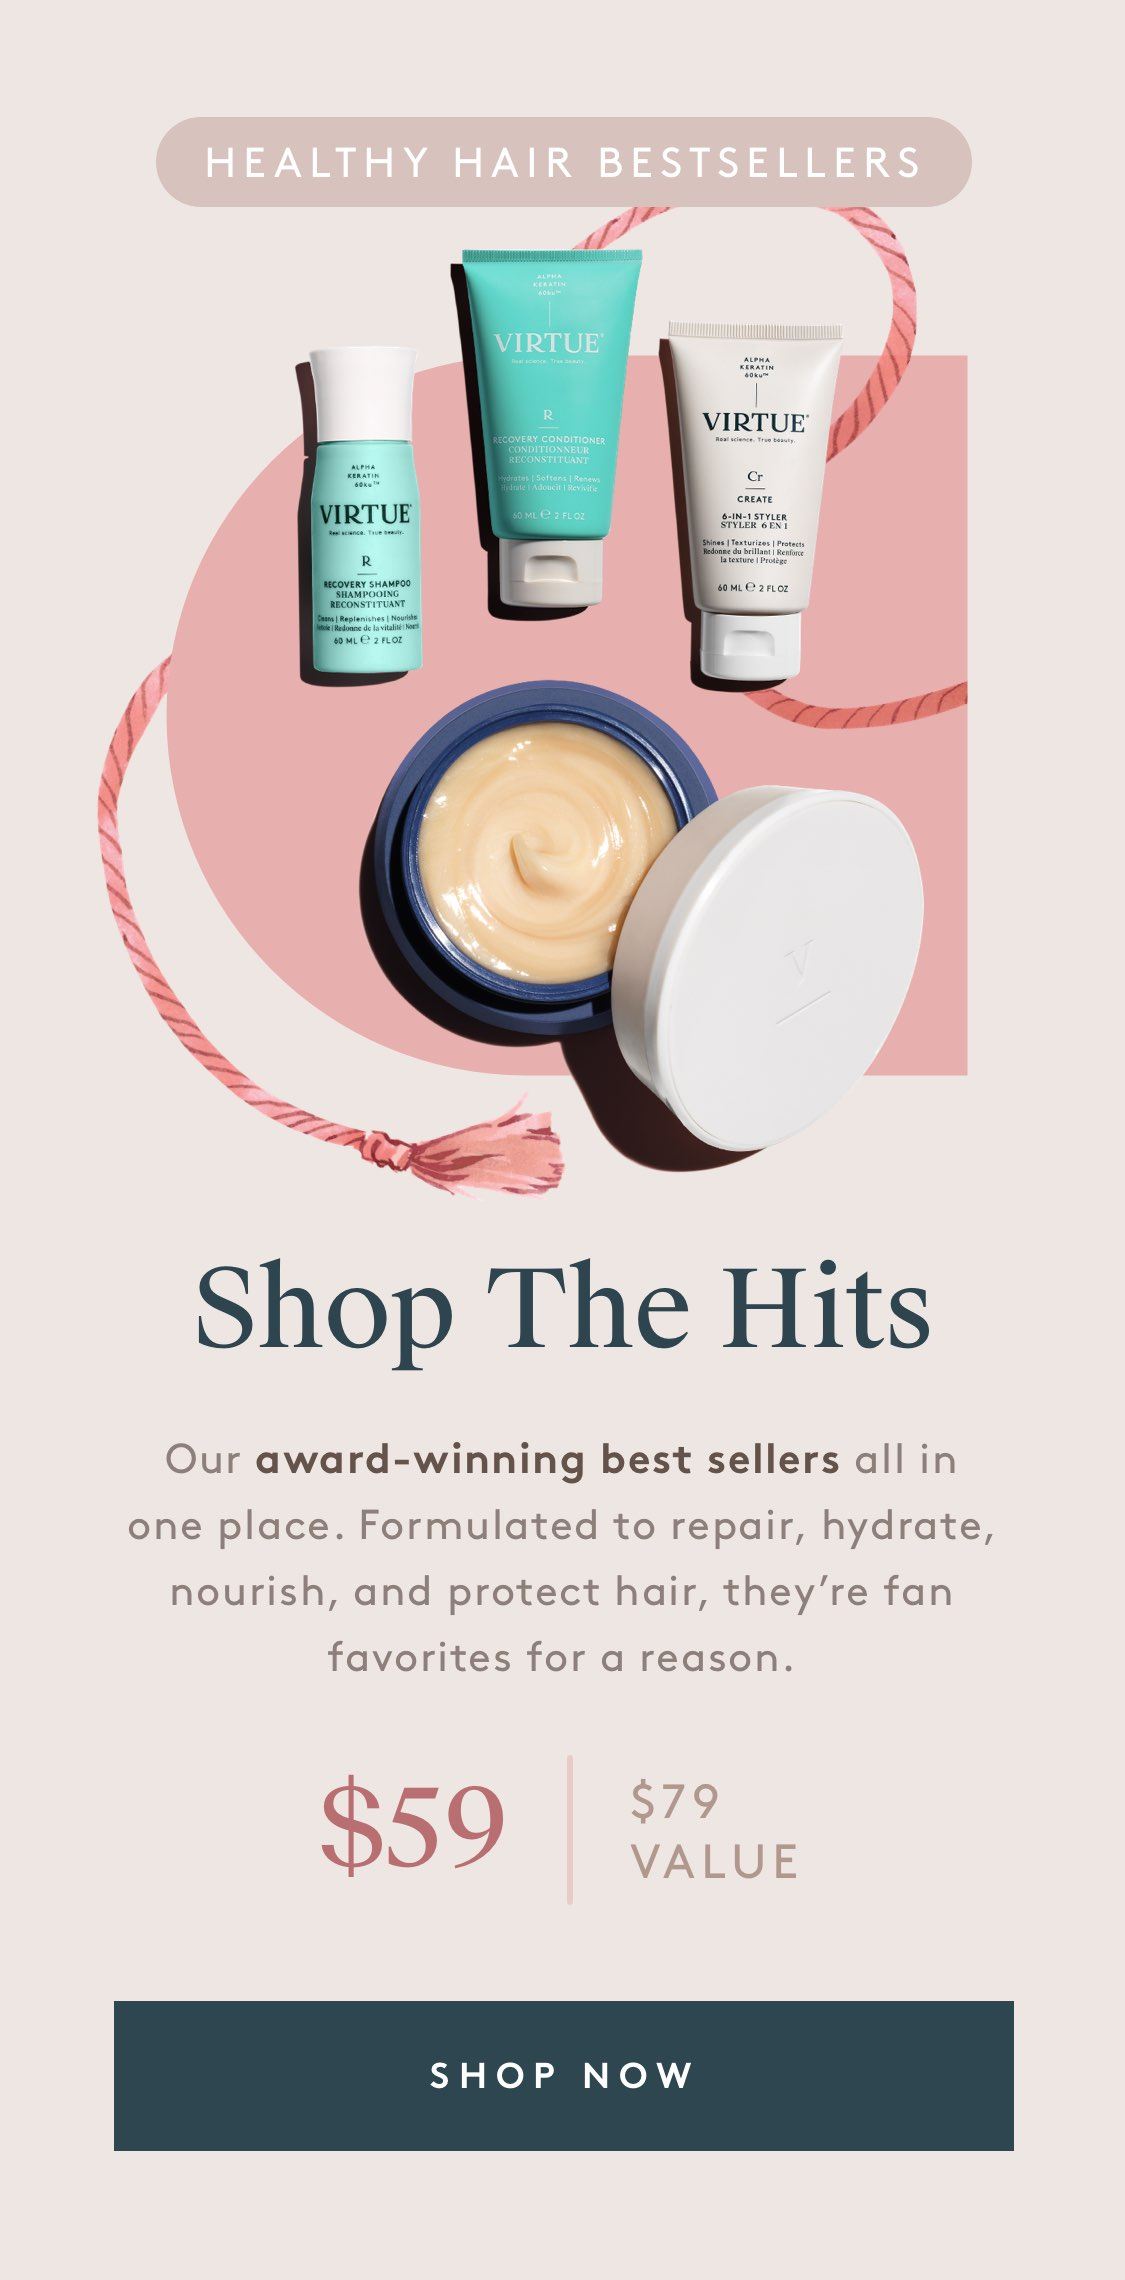 Shop the Hits